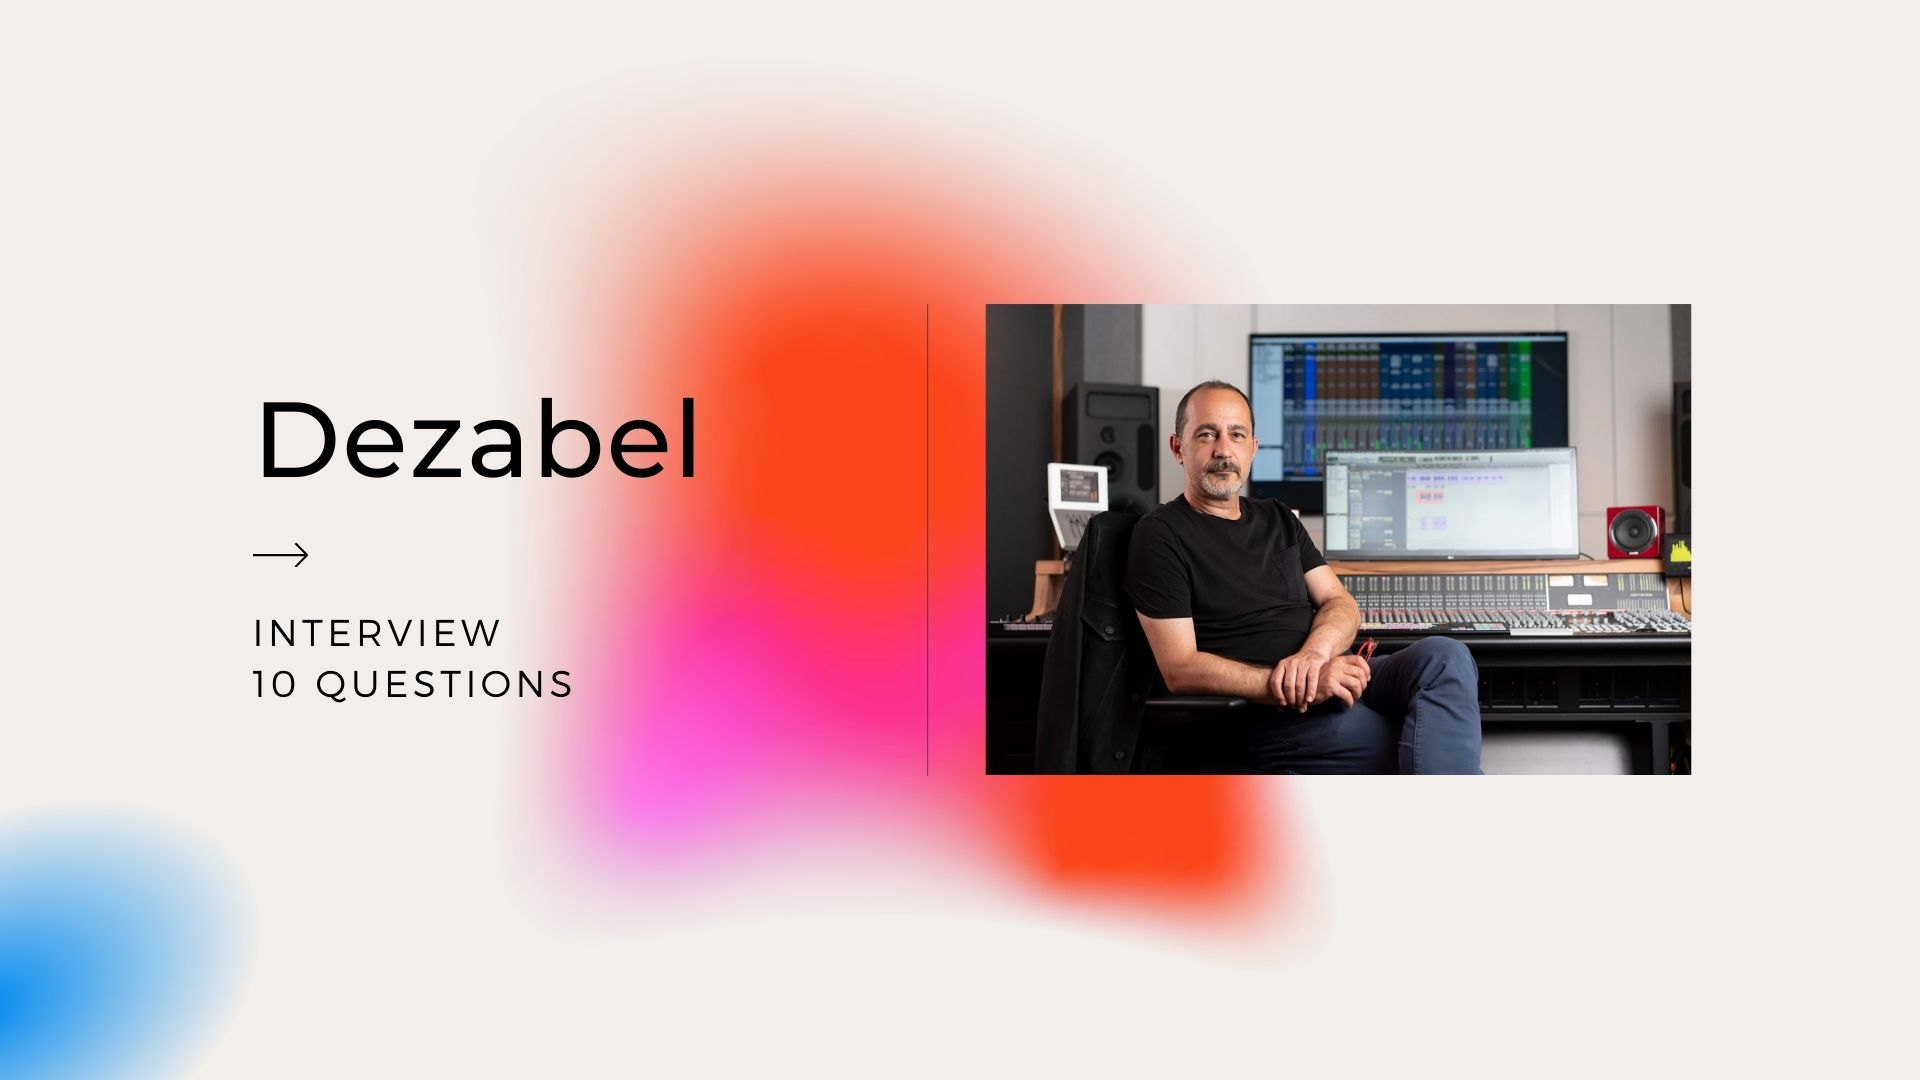 Today we would like to introduce you to Dezabel, Songwriter and producer expertly fuses pop, jazz, soul, and electronica to make instantly lovable tracks. Collaborating with singers from around the world, he creates a sound with universal appeal. His latest release, 'When It Comes To You,' showcases his gift for laid back grooves and irresistible melodies.